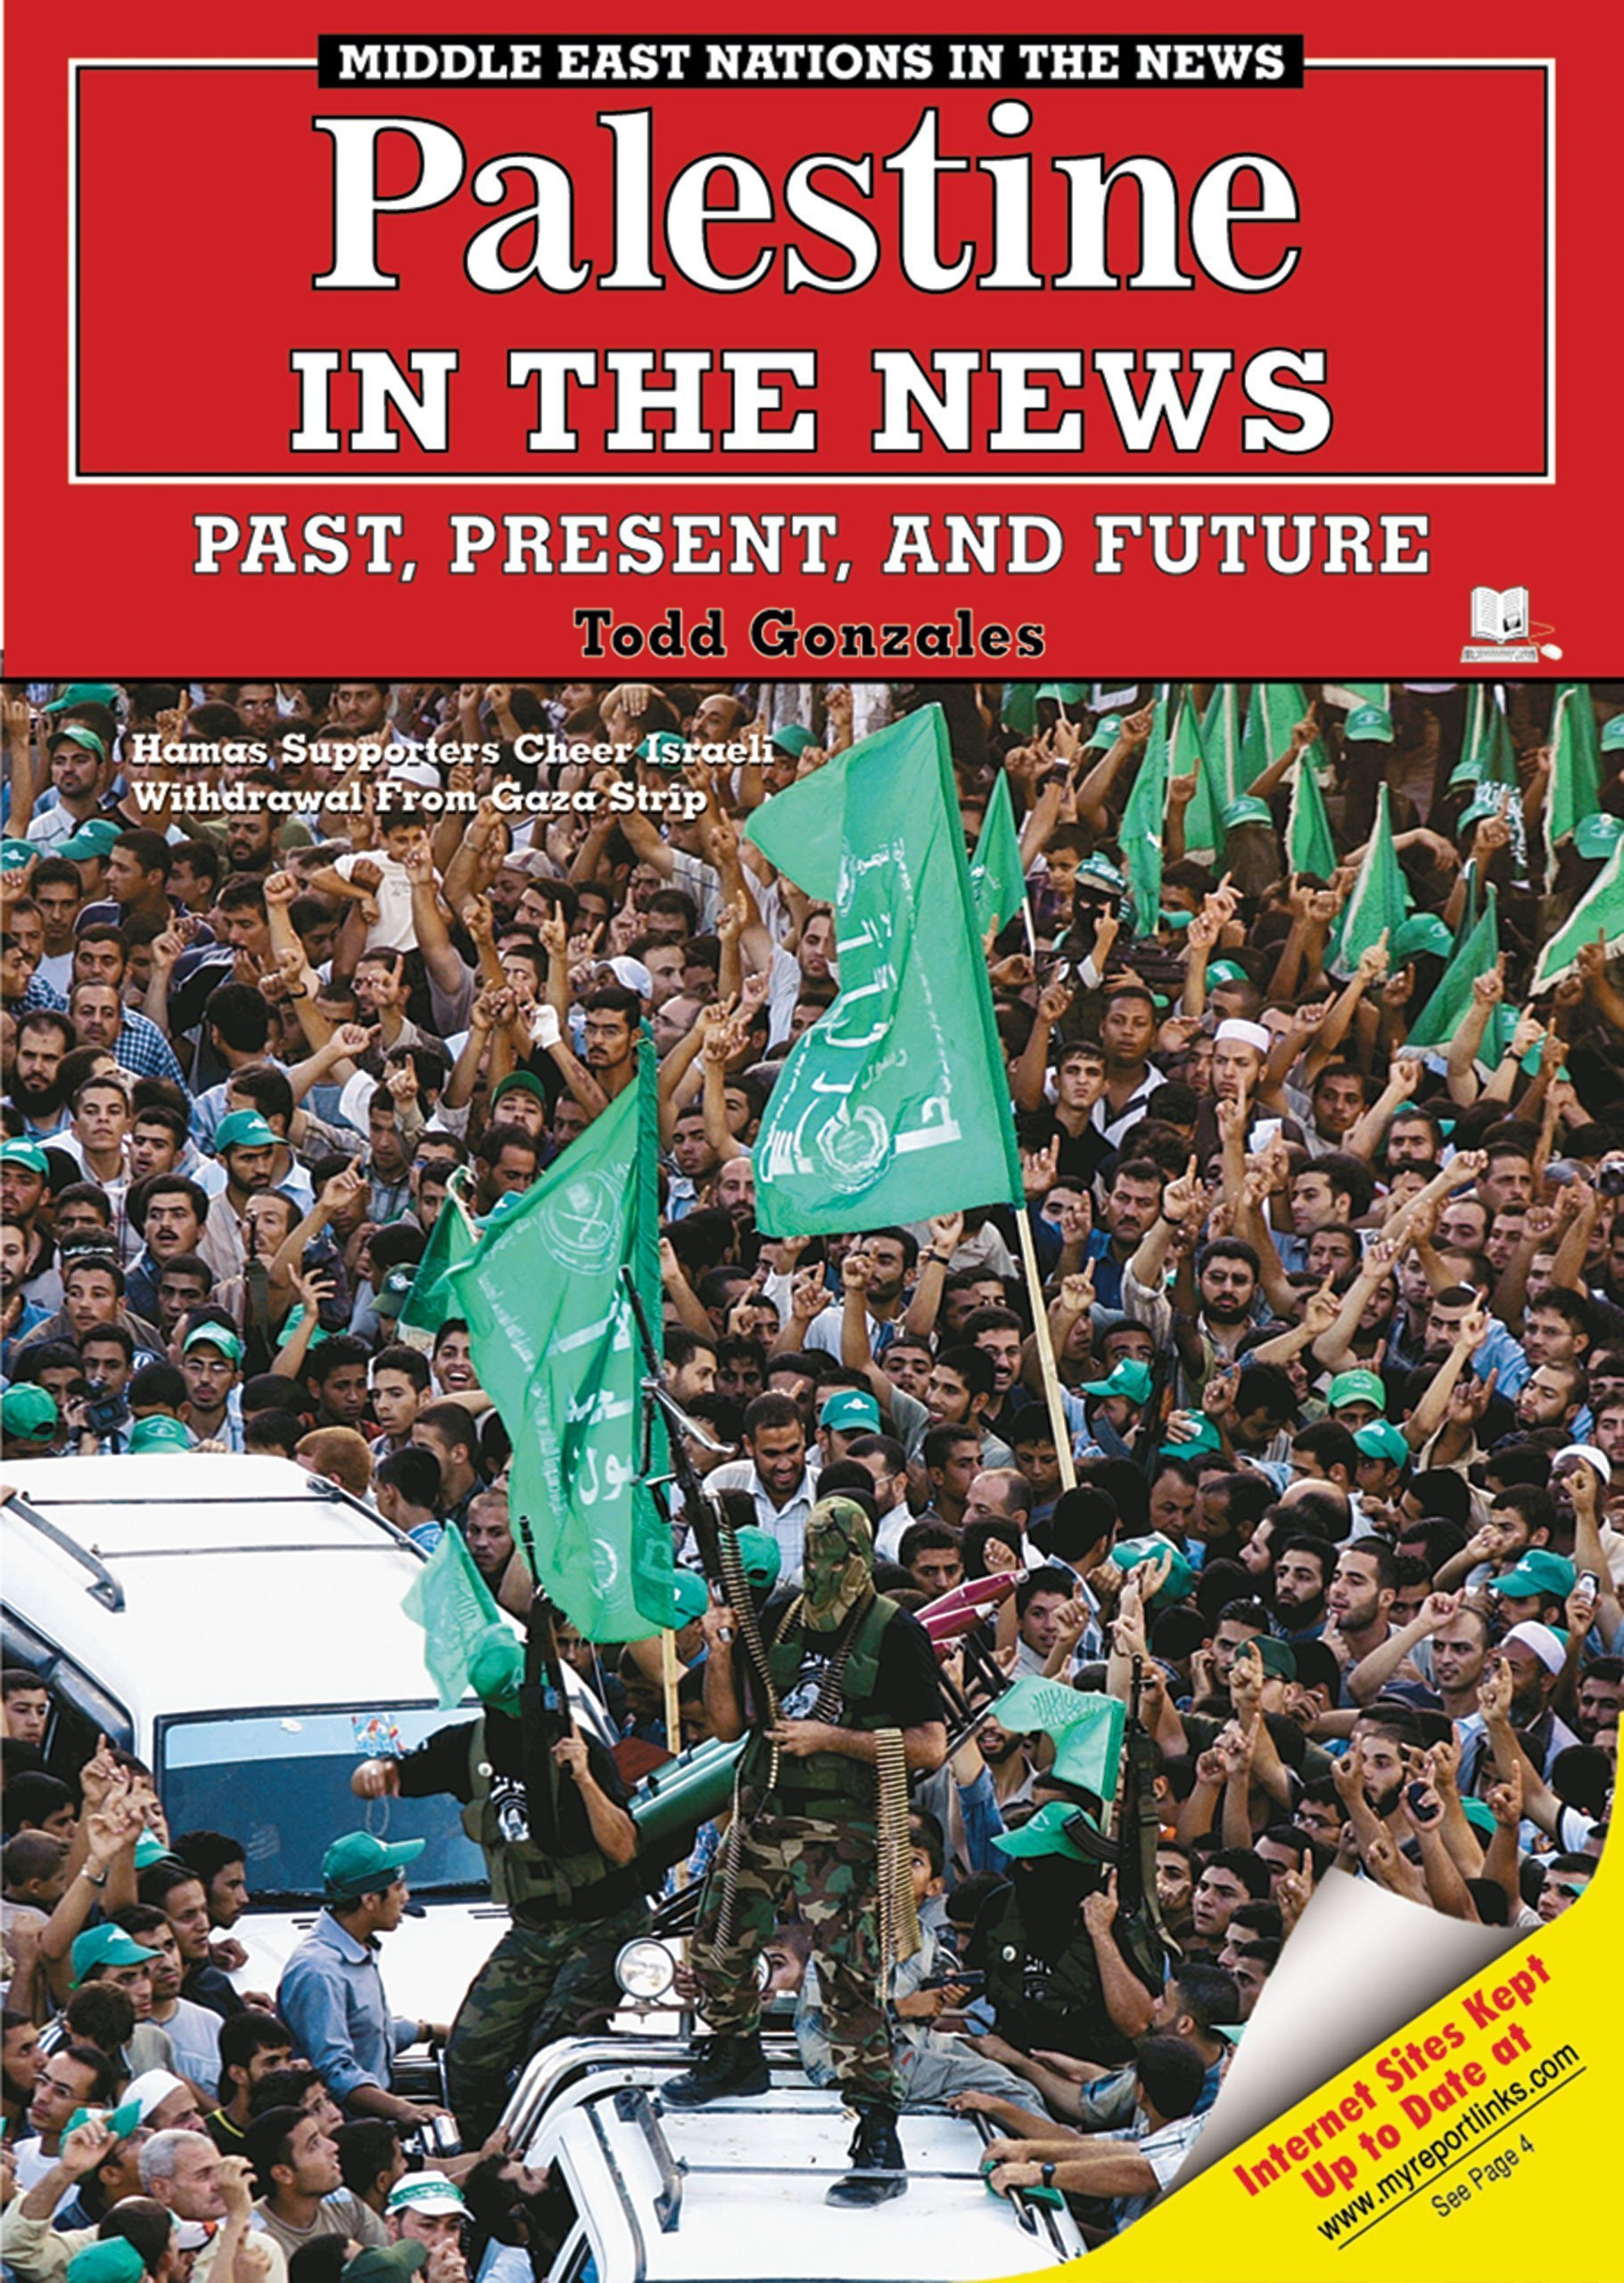 Palestine in the News: Past, Present, And Future (Middle East Nations in the News) ebook